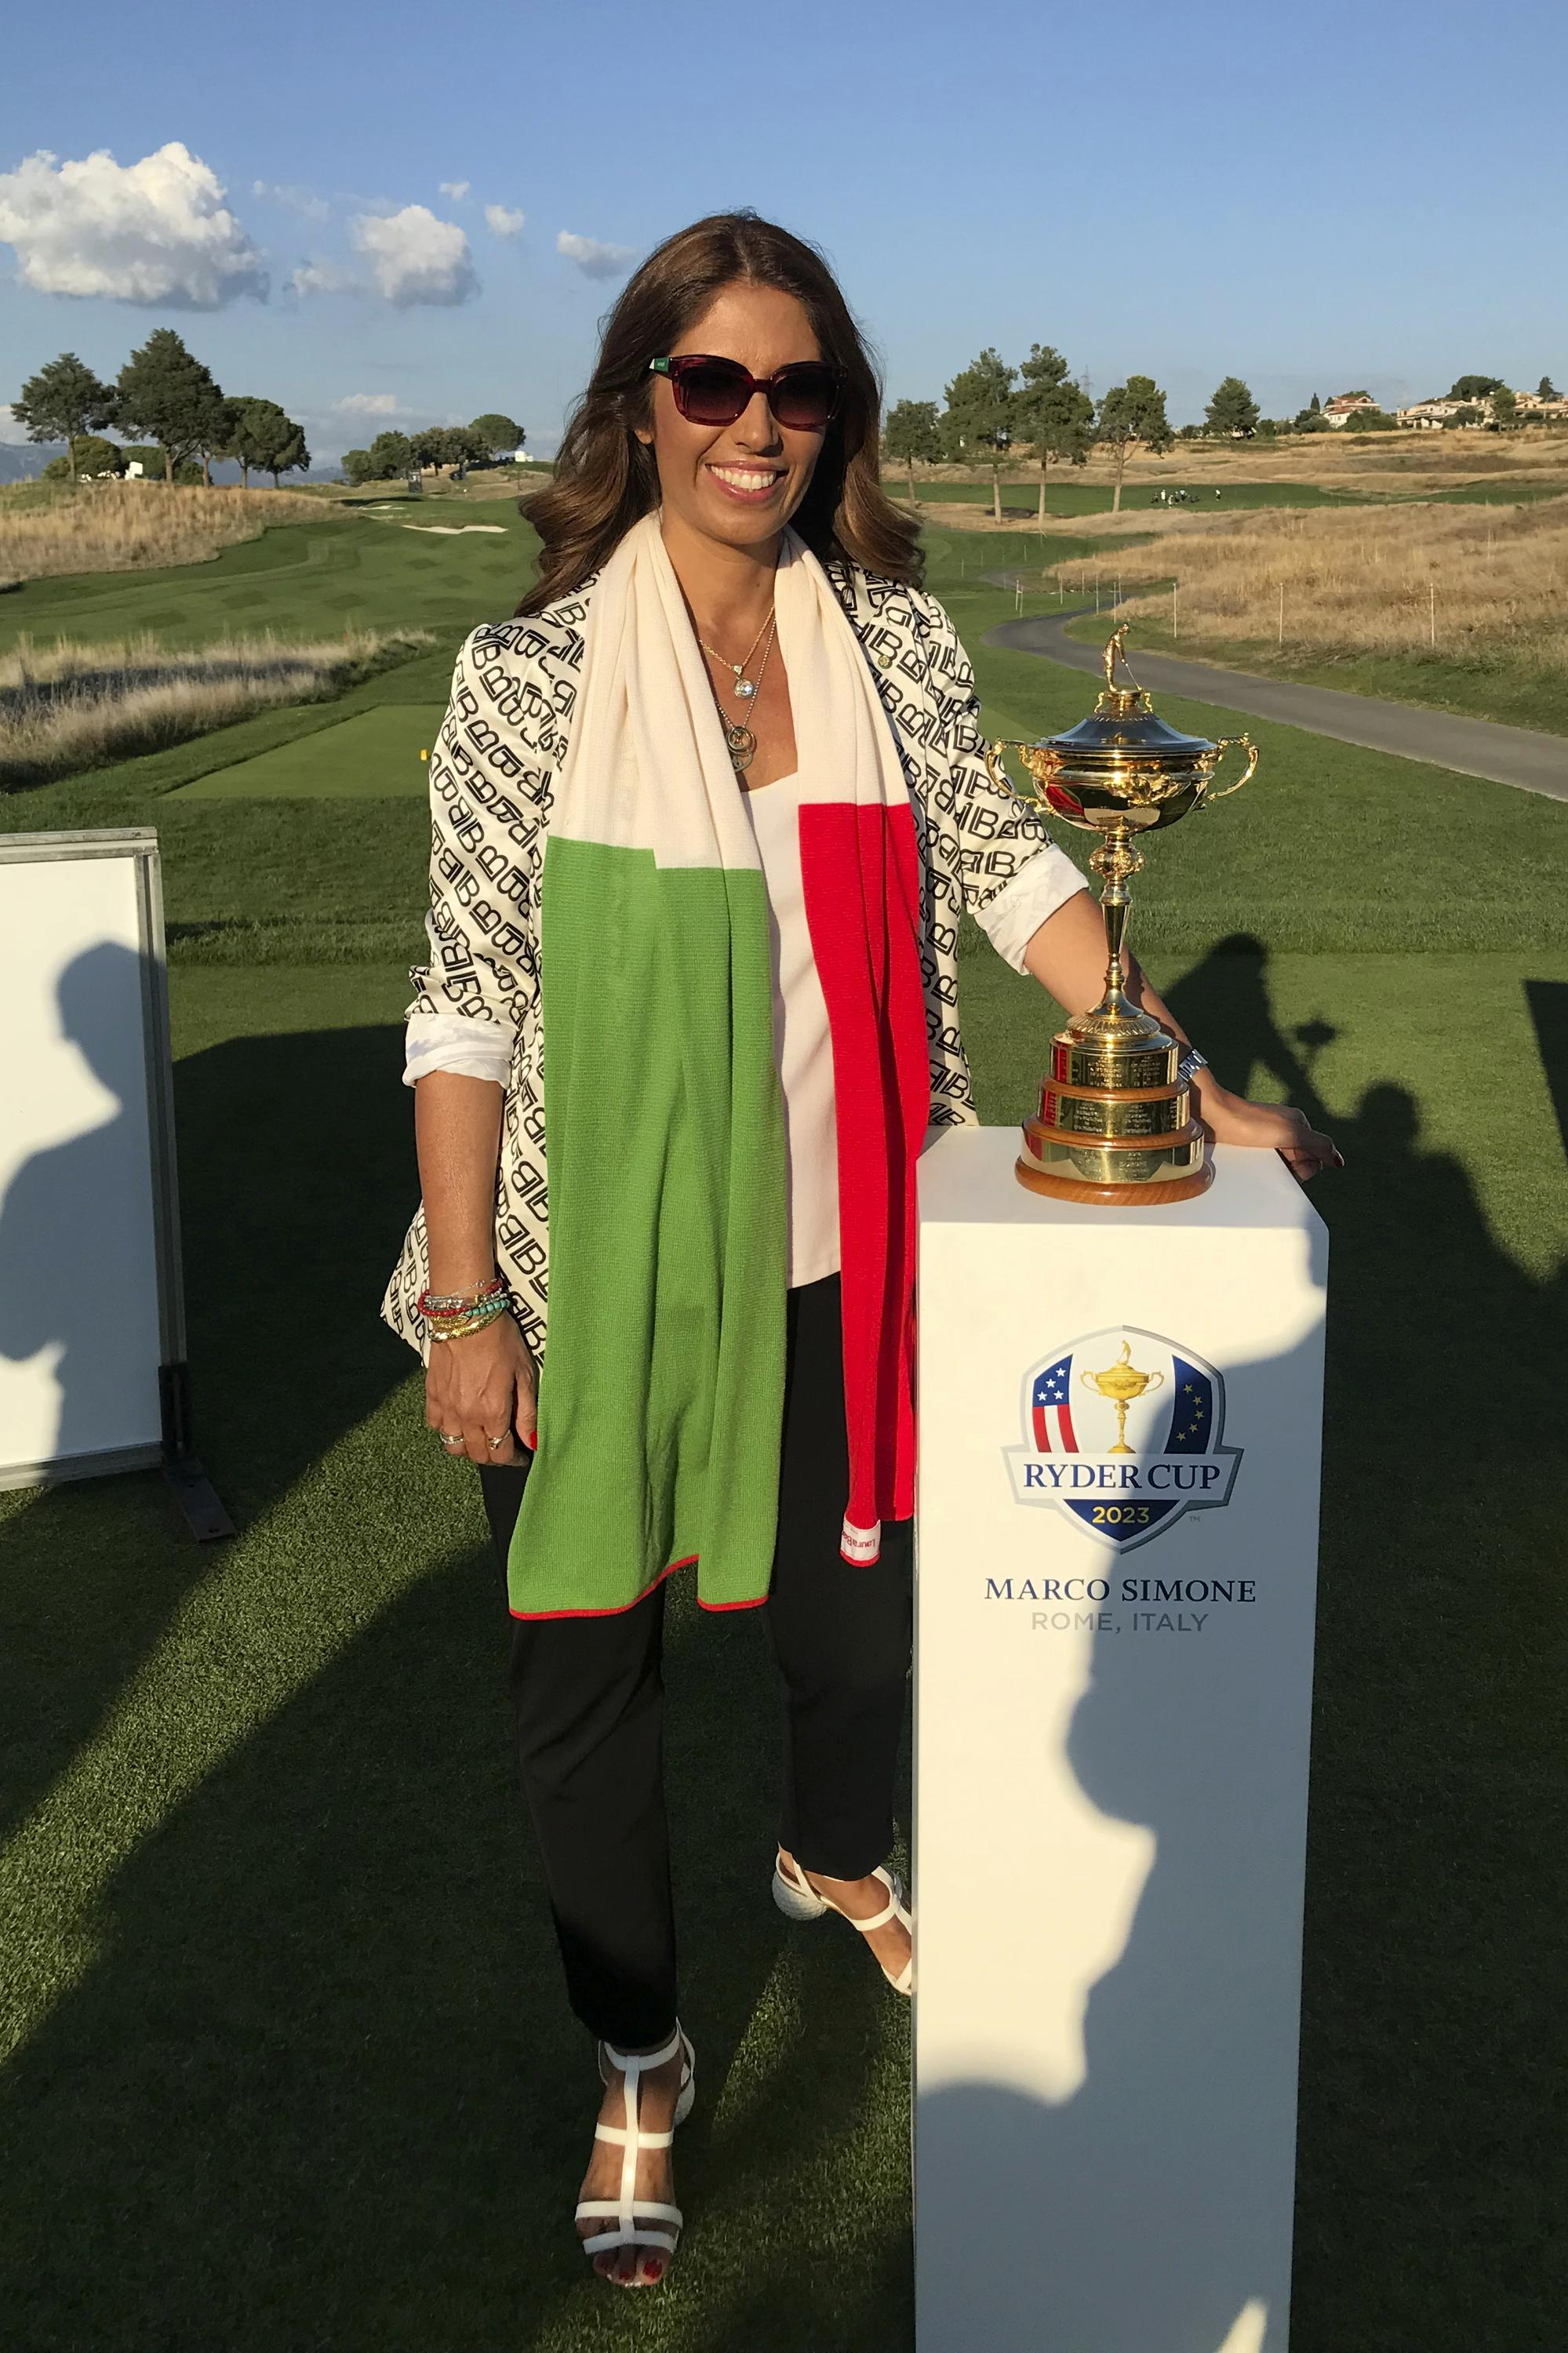 In 2023, the Ryder Cup will blend with high fashion in Italy - Associated Press